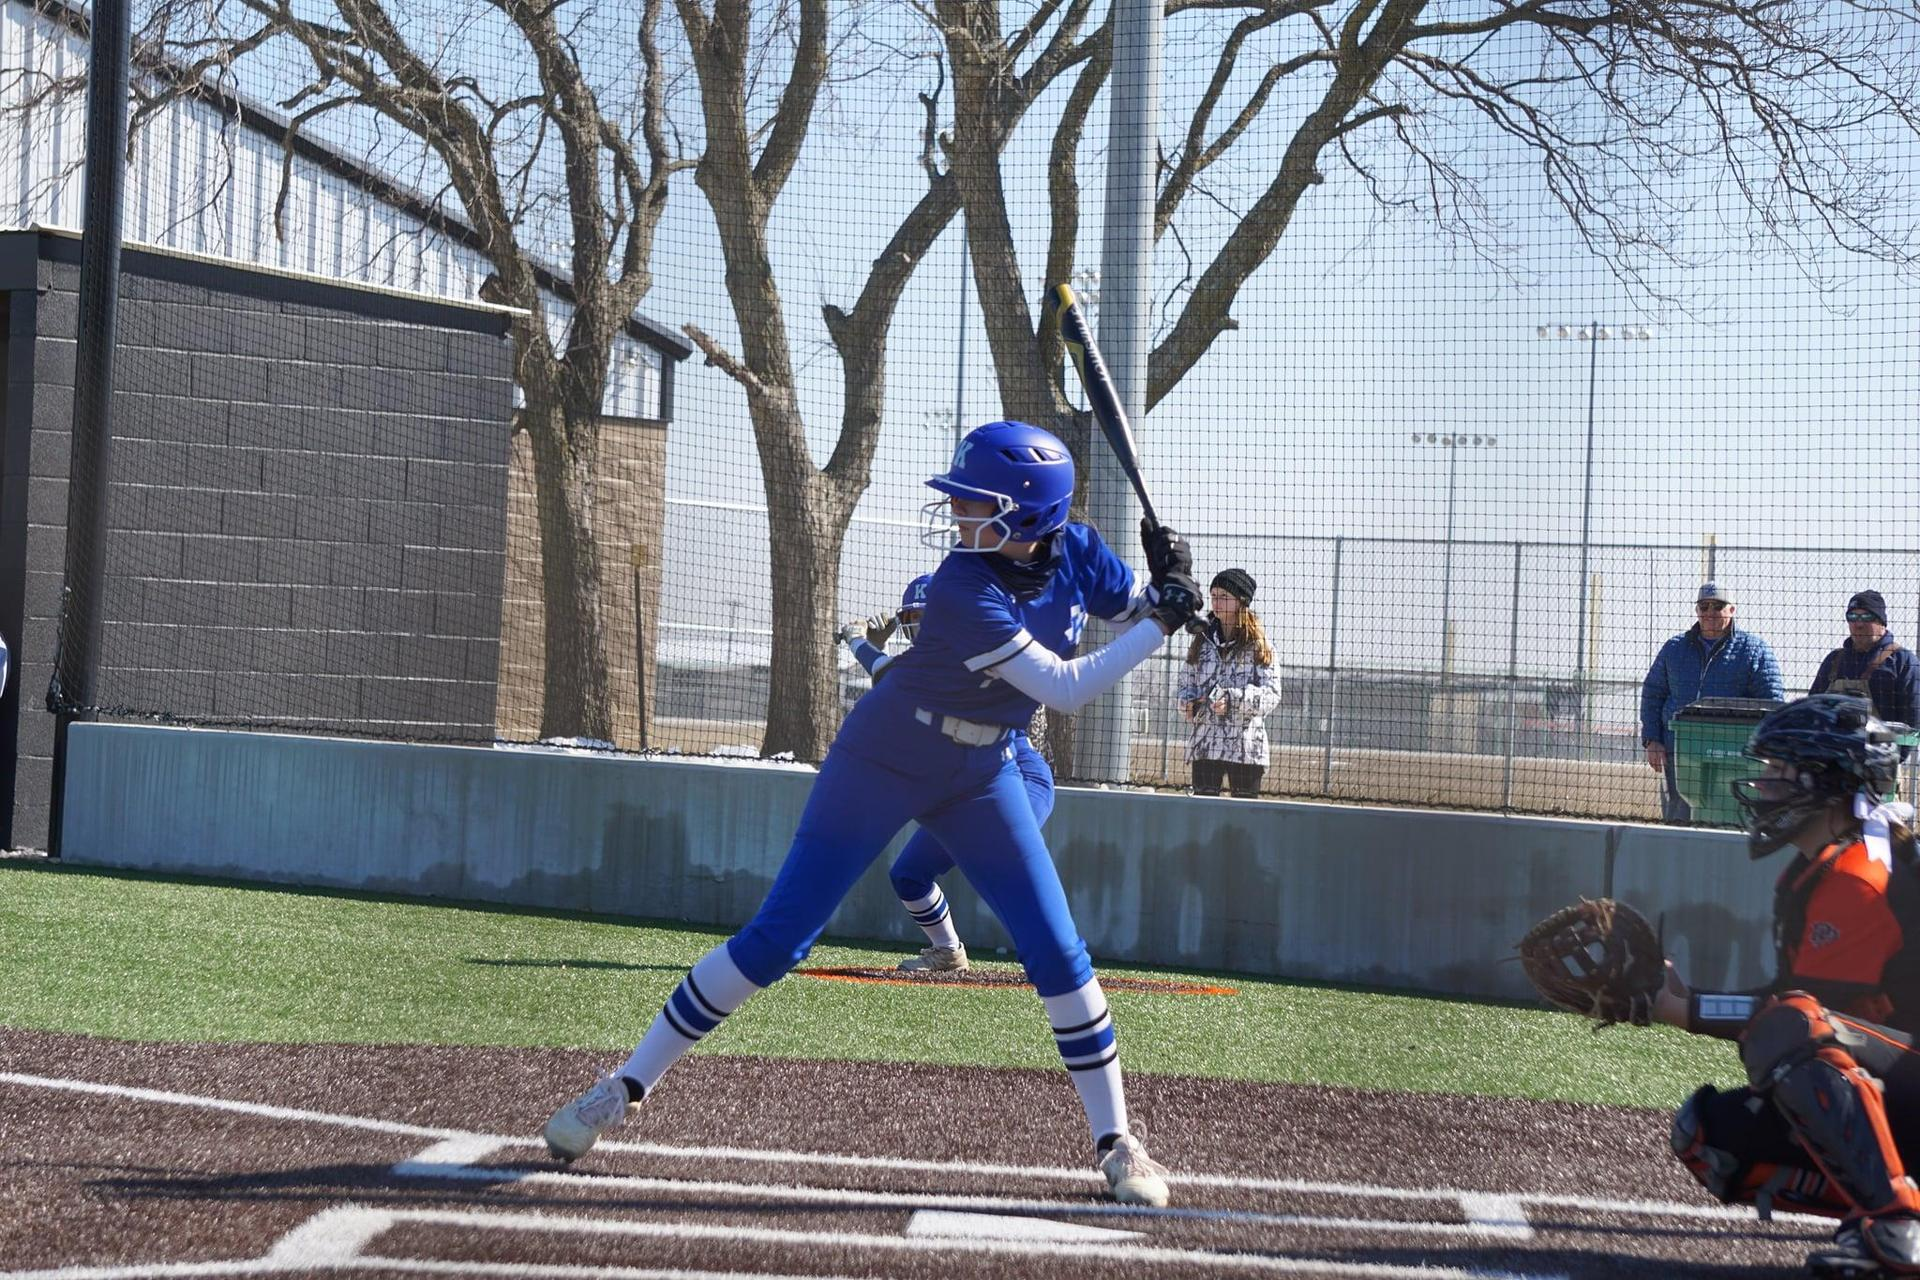 a softball player in all blue steps up to the plate ready to swing the bat